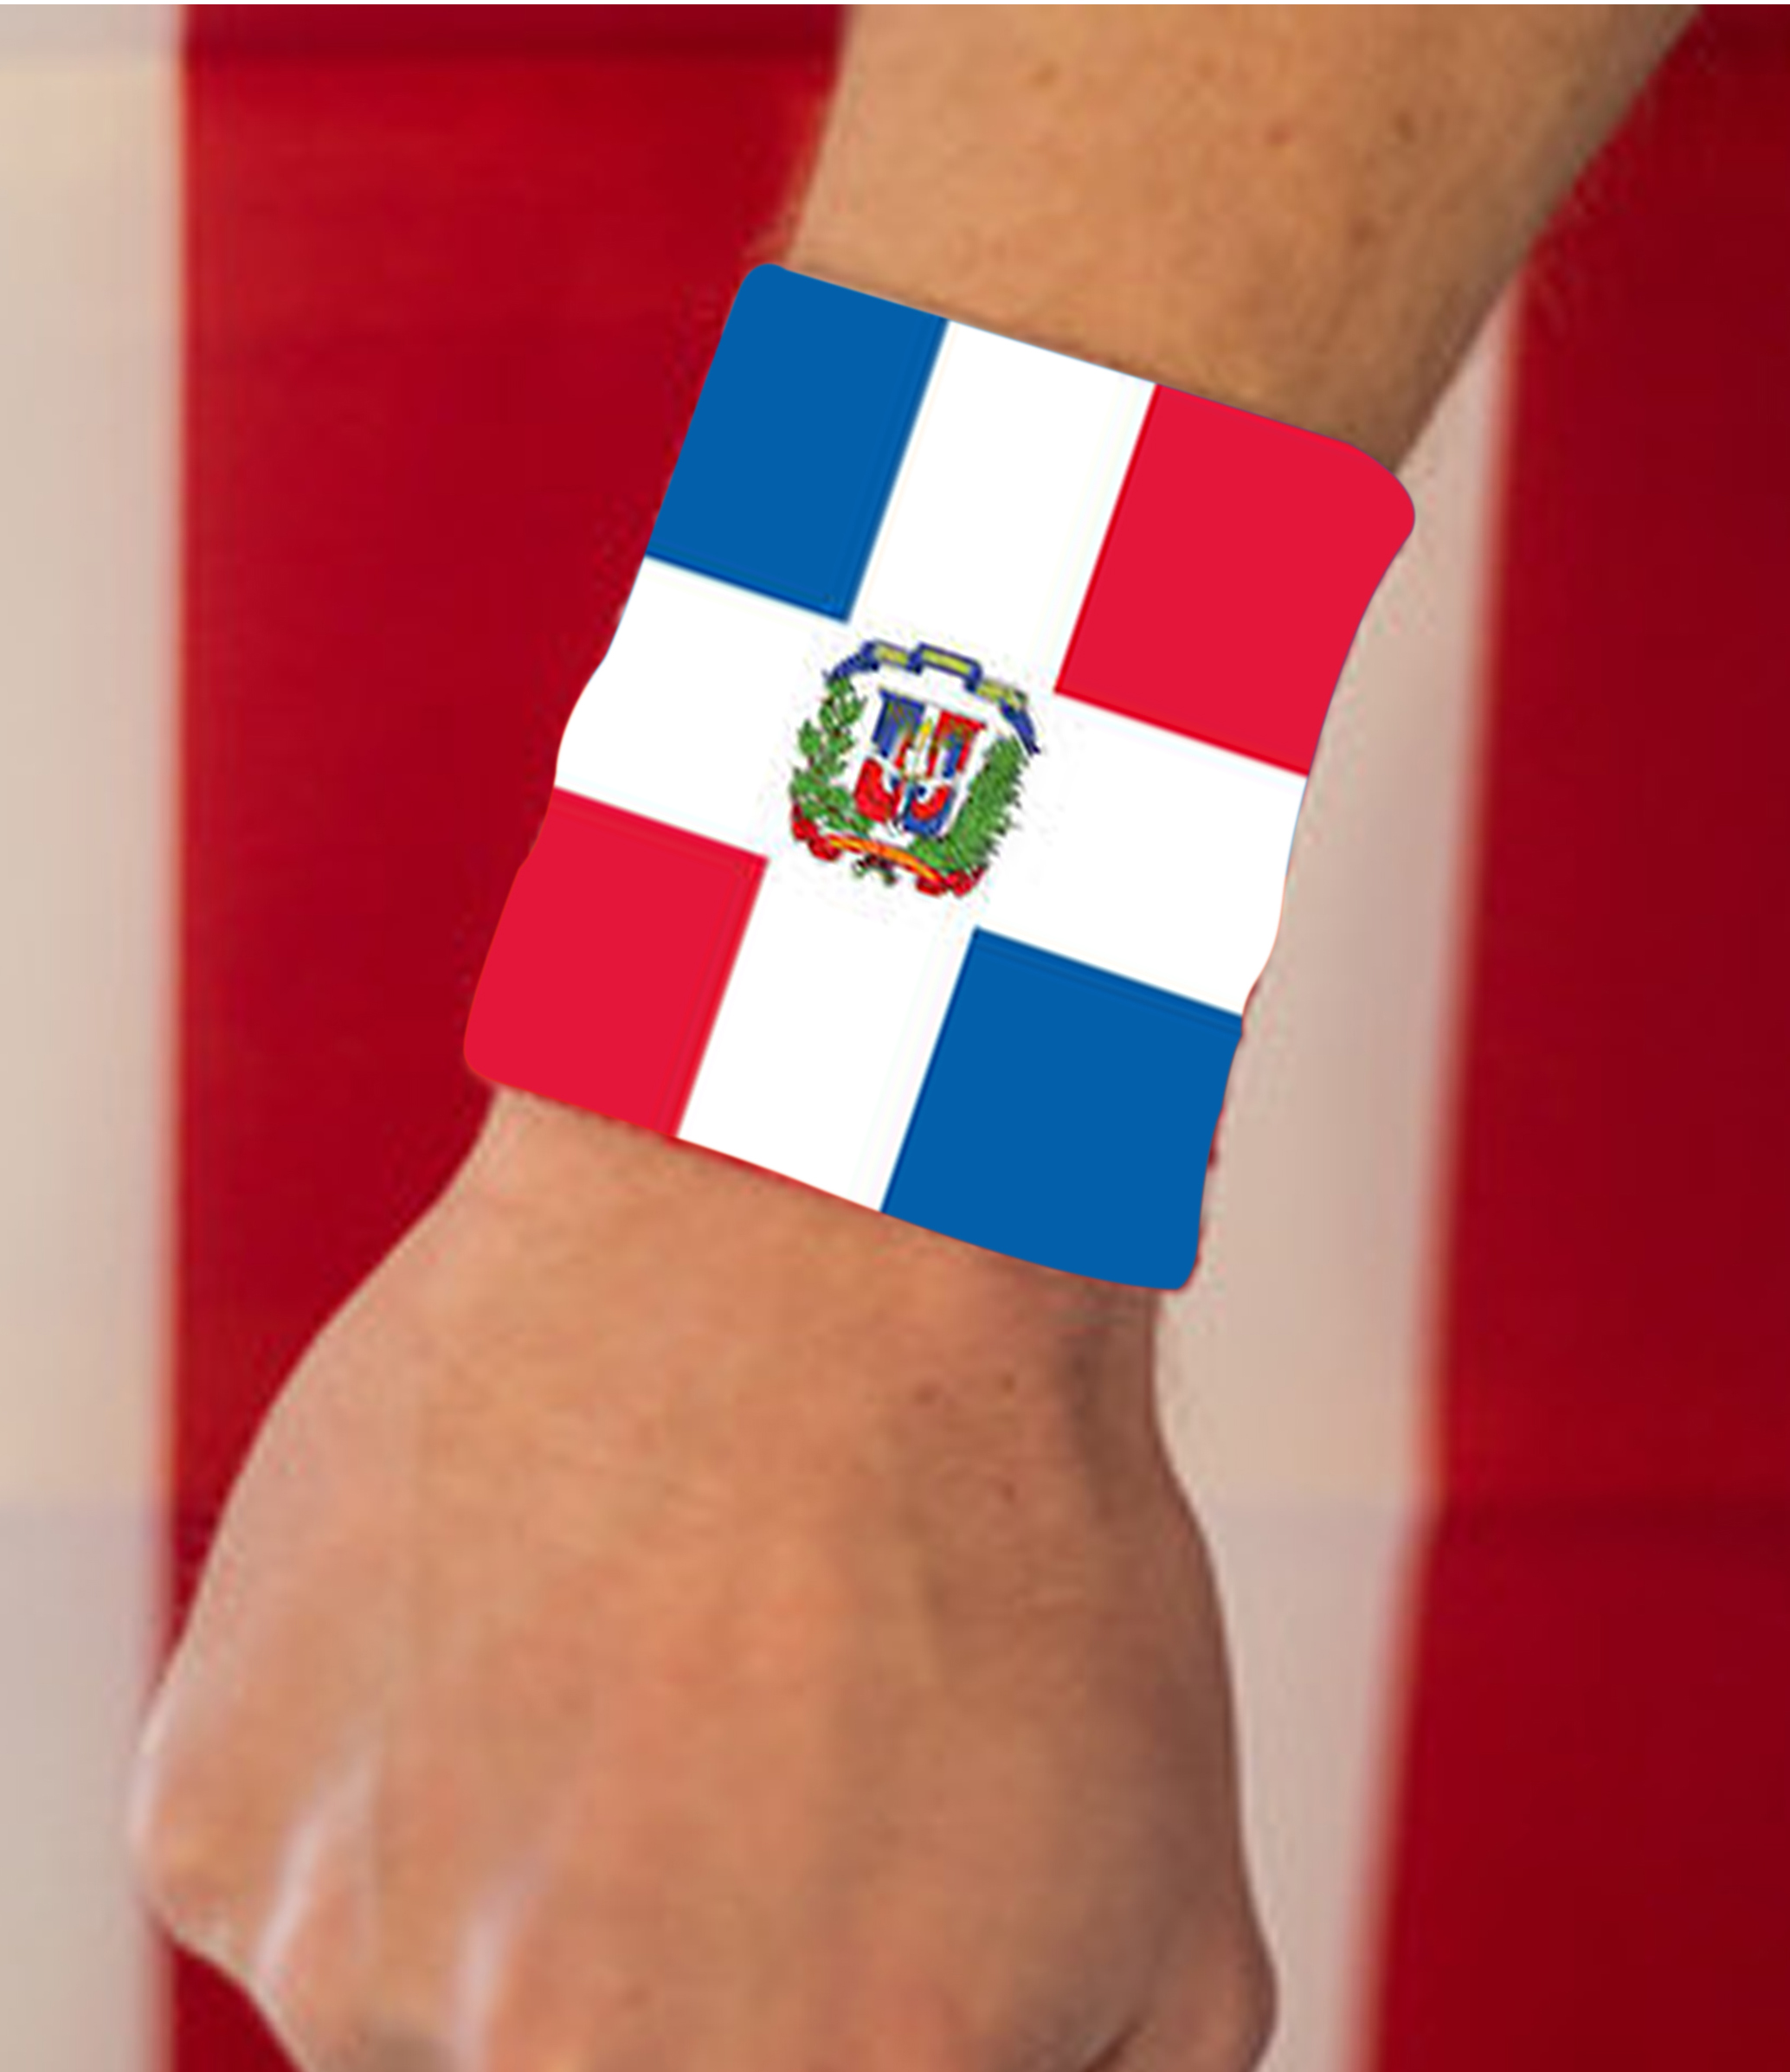 images/Dominican Republic image hand band